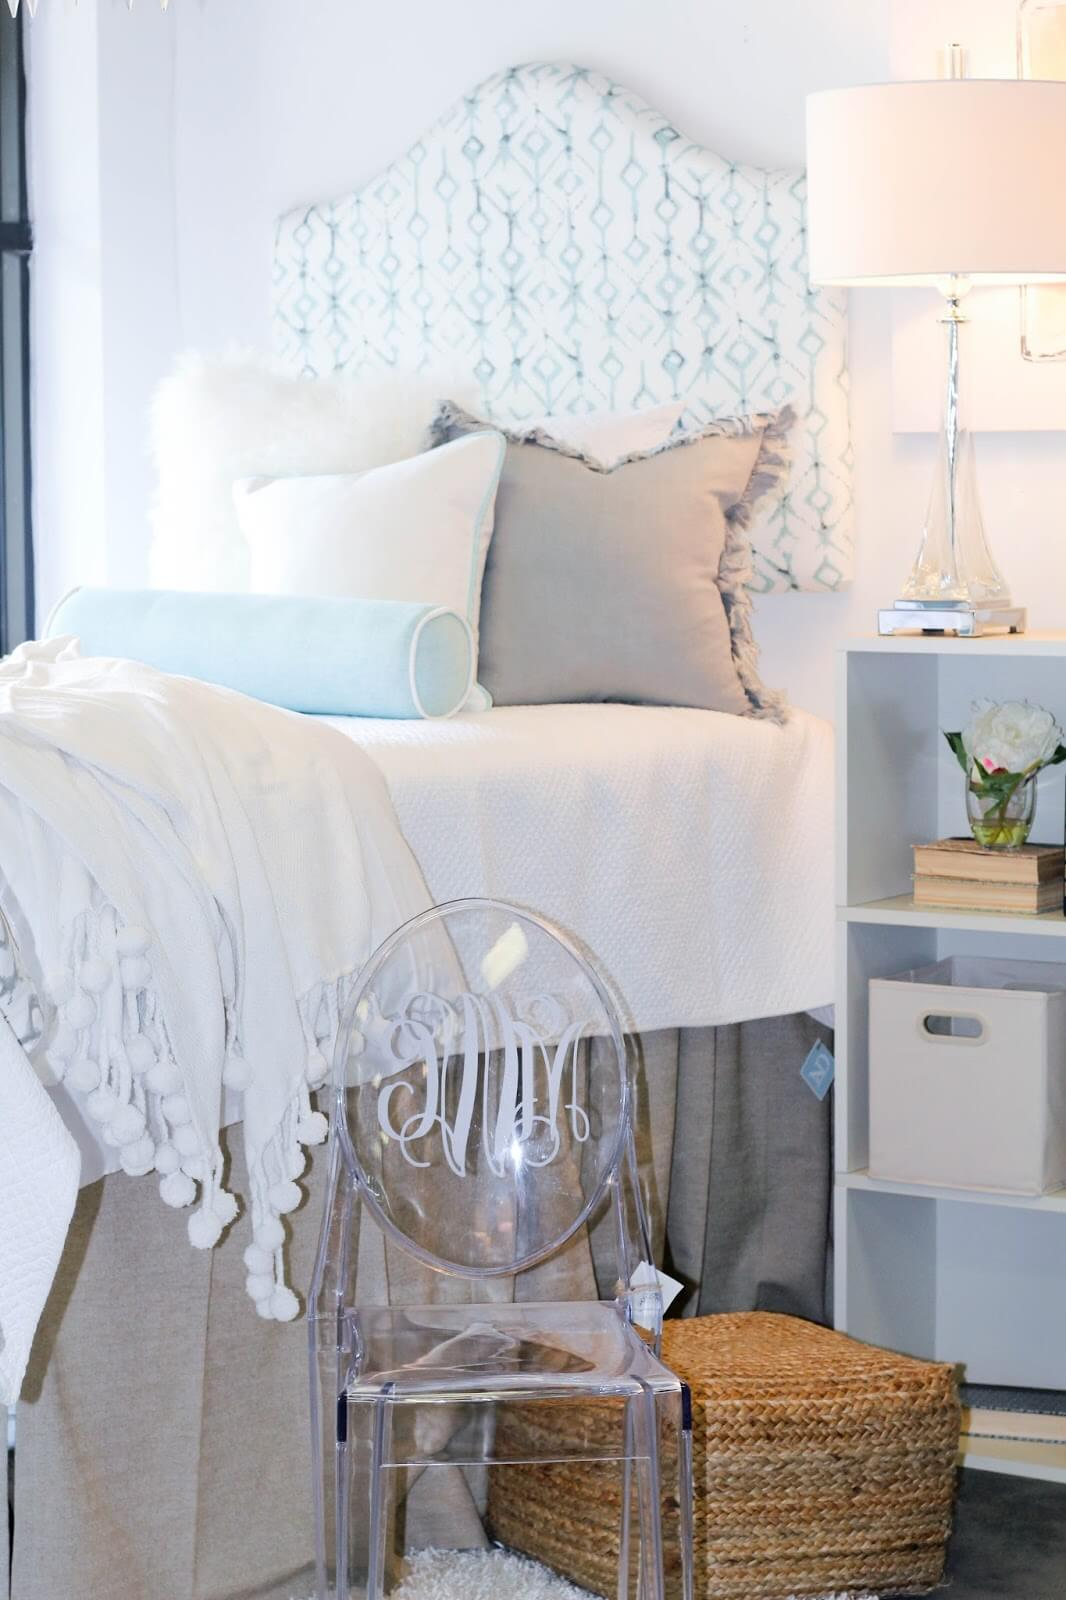 14 Best Trendy Bedroom Decor and Design Ideas for 2020 on Trendy Room  id=27475